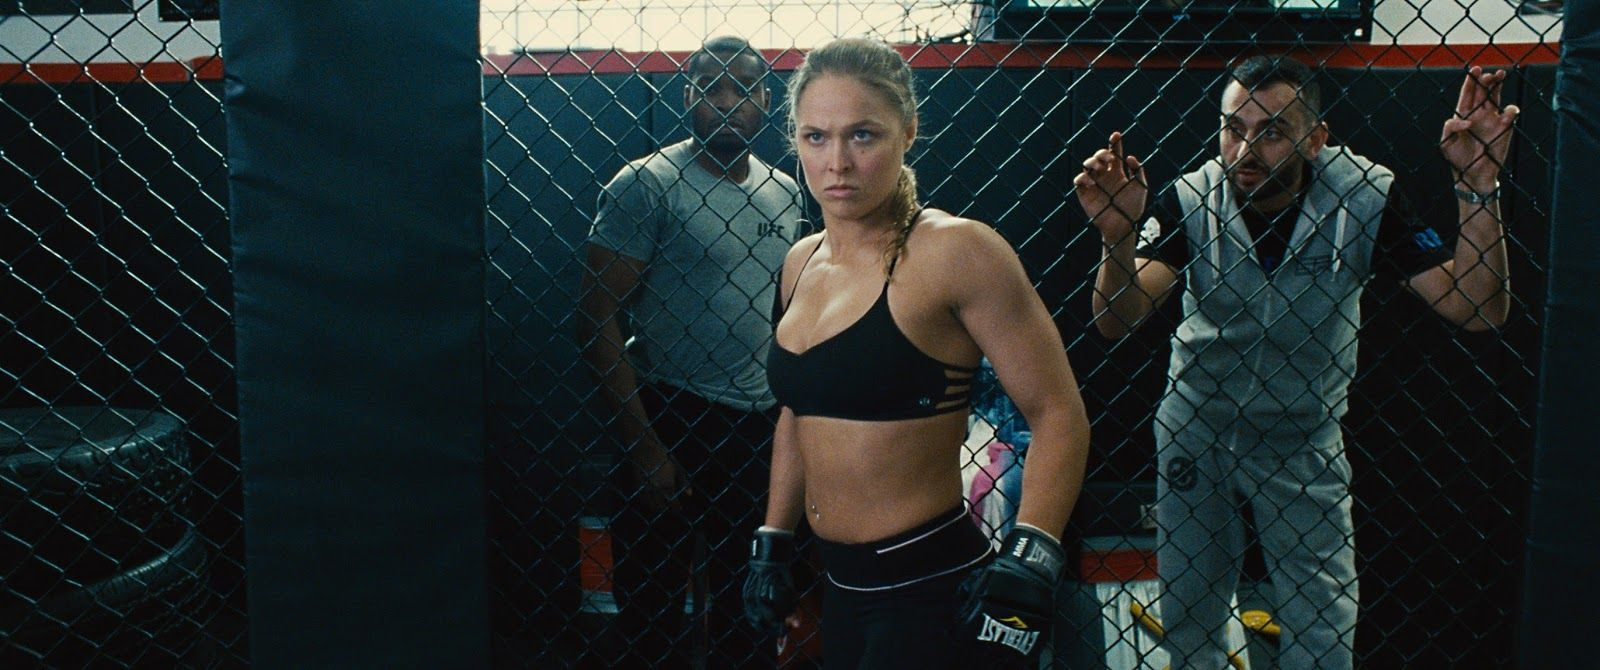 Ronda Rousey in the Entourage Movie